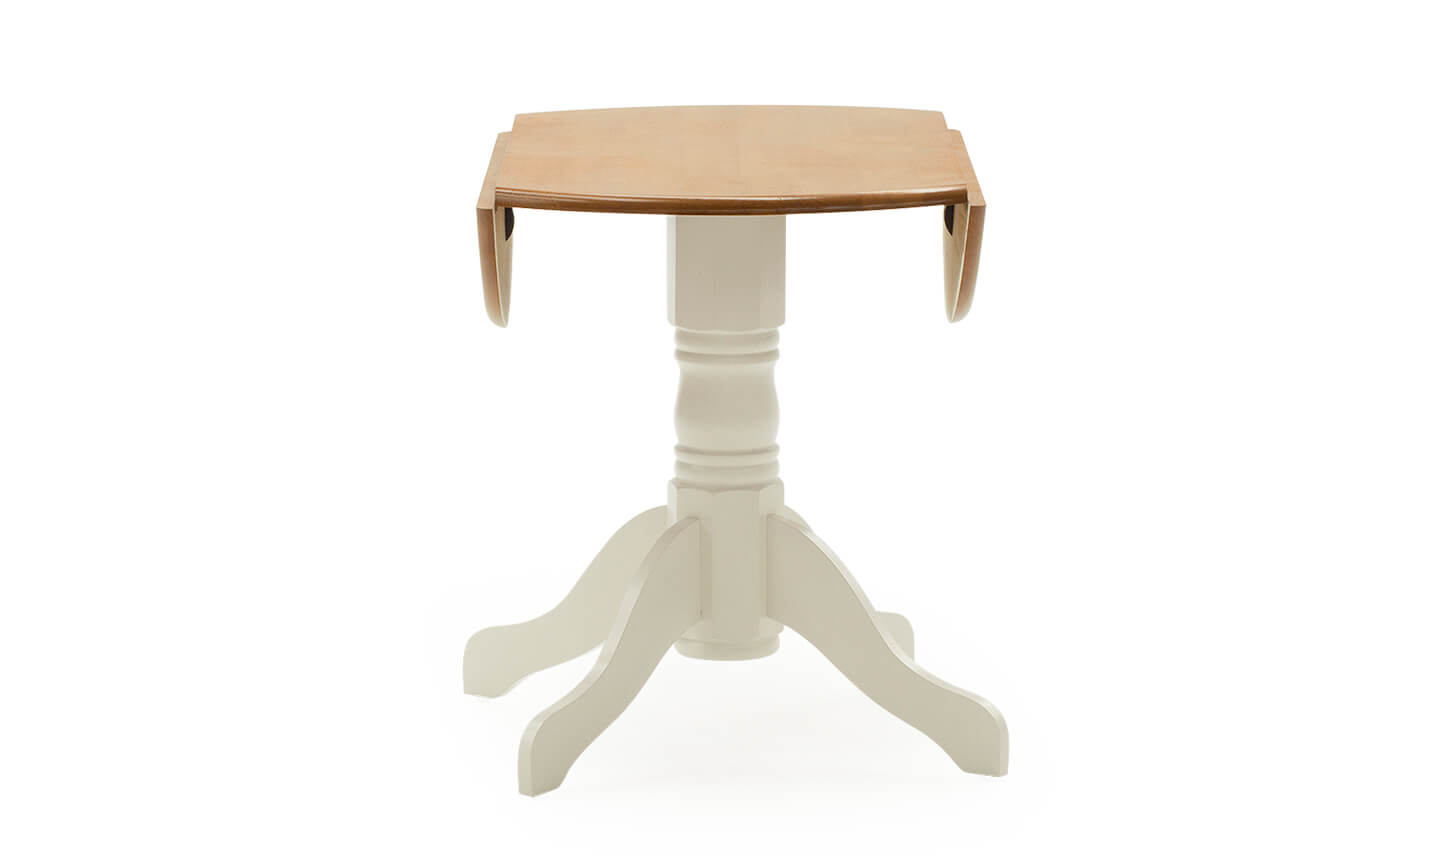 Brecon Extendng Dining Table Buttermilk